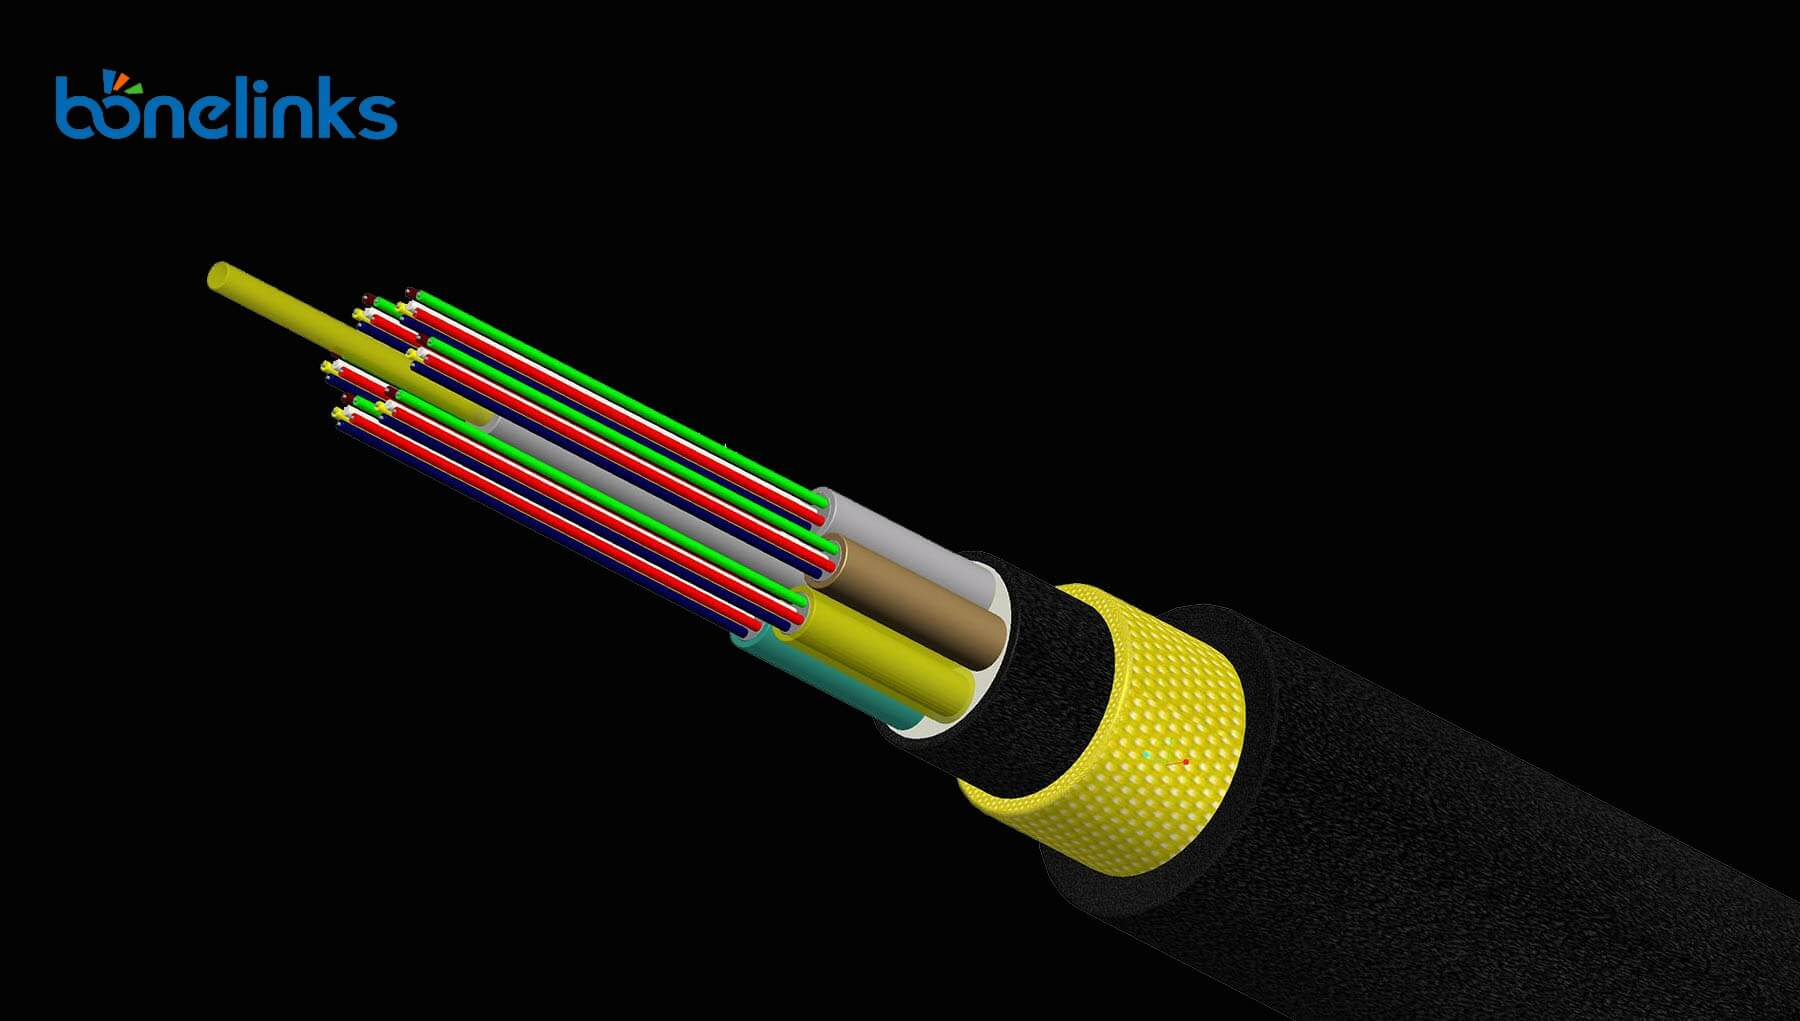 GYHTY Cable BWFG1120 - Loose Tube Stranded Non-metallic Strengthen Member Fiber Cable BW-D770